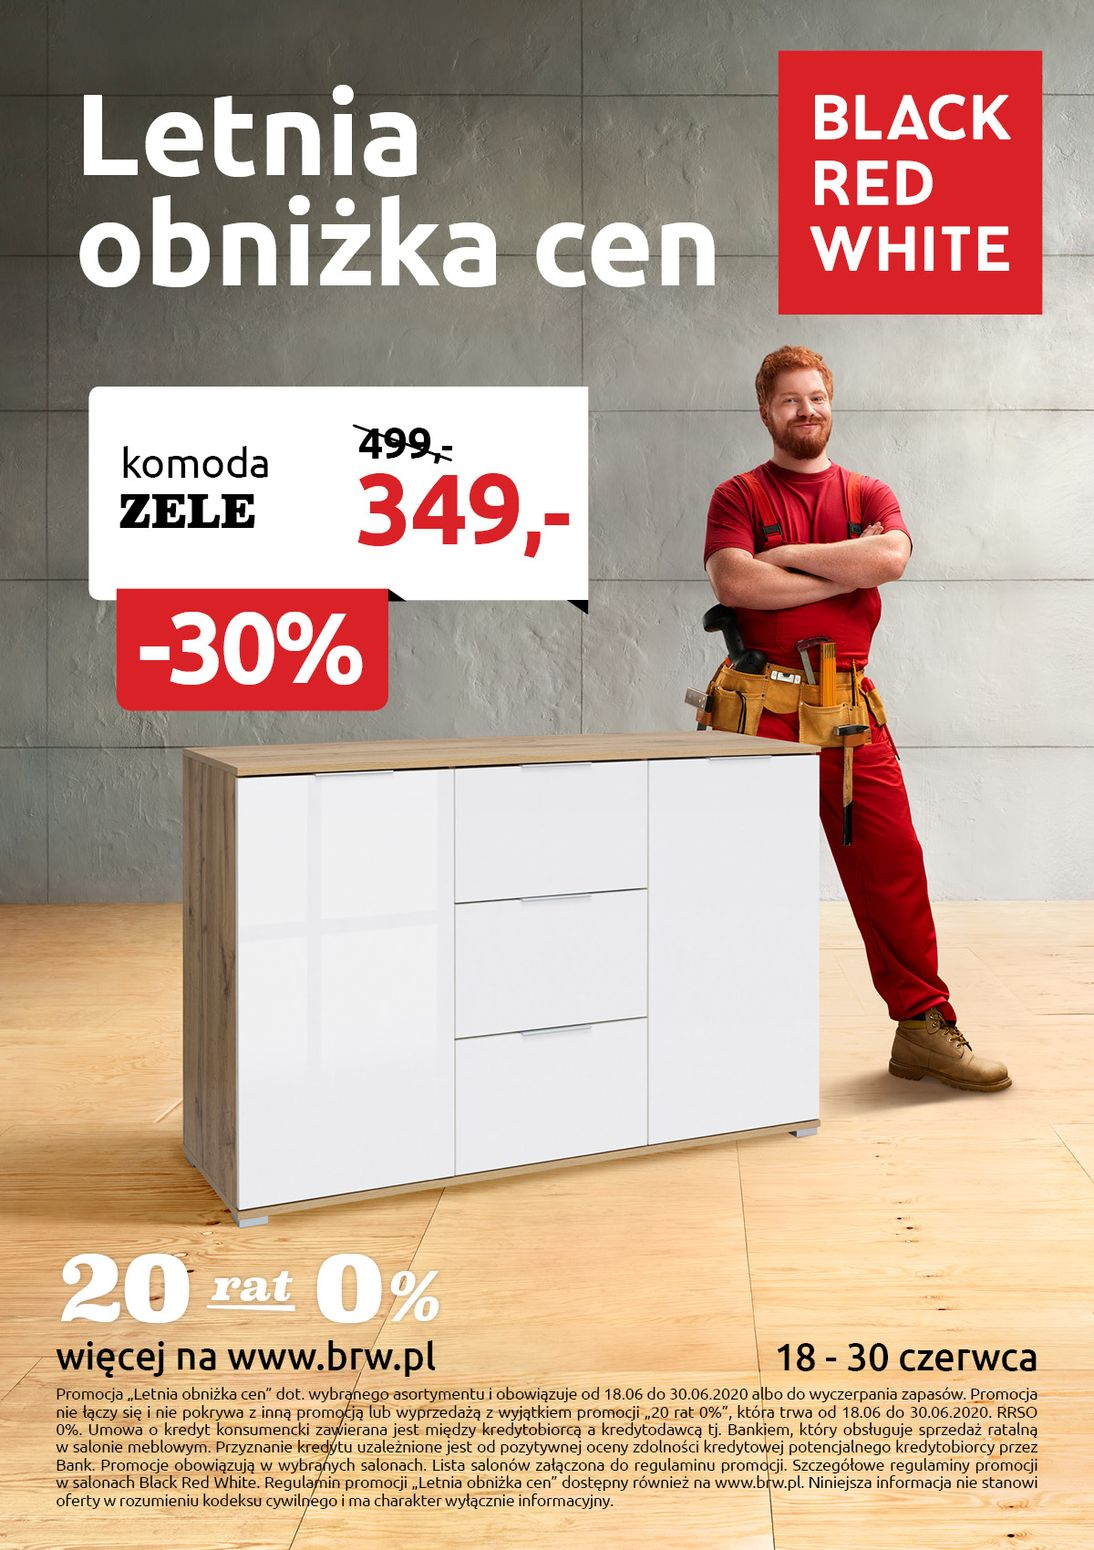 Gazetka Black Red White od 18.06.2020 do 30.06.2020